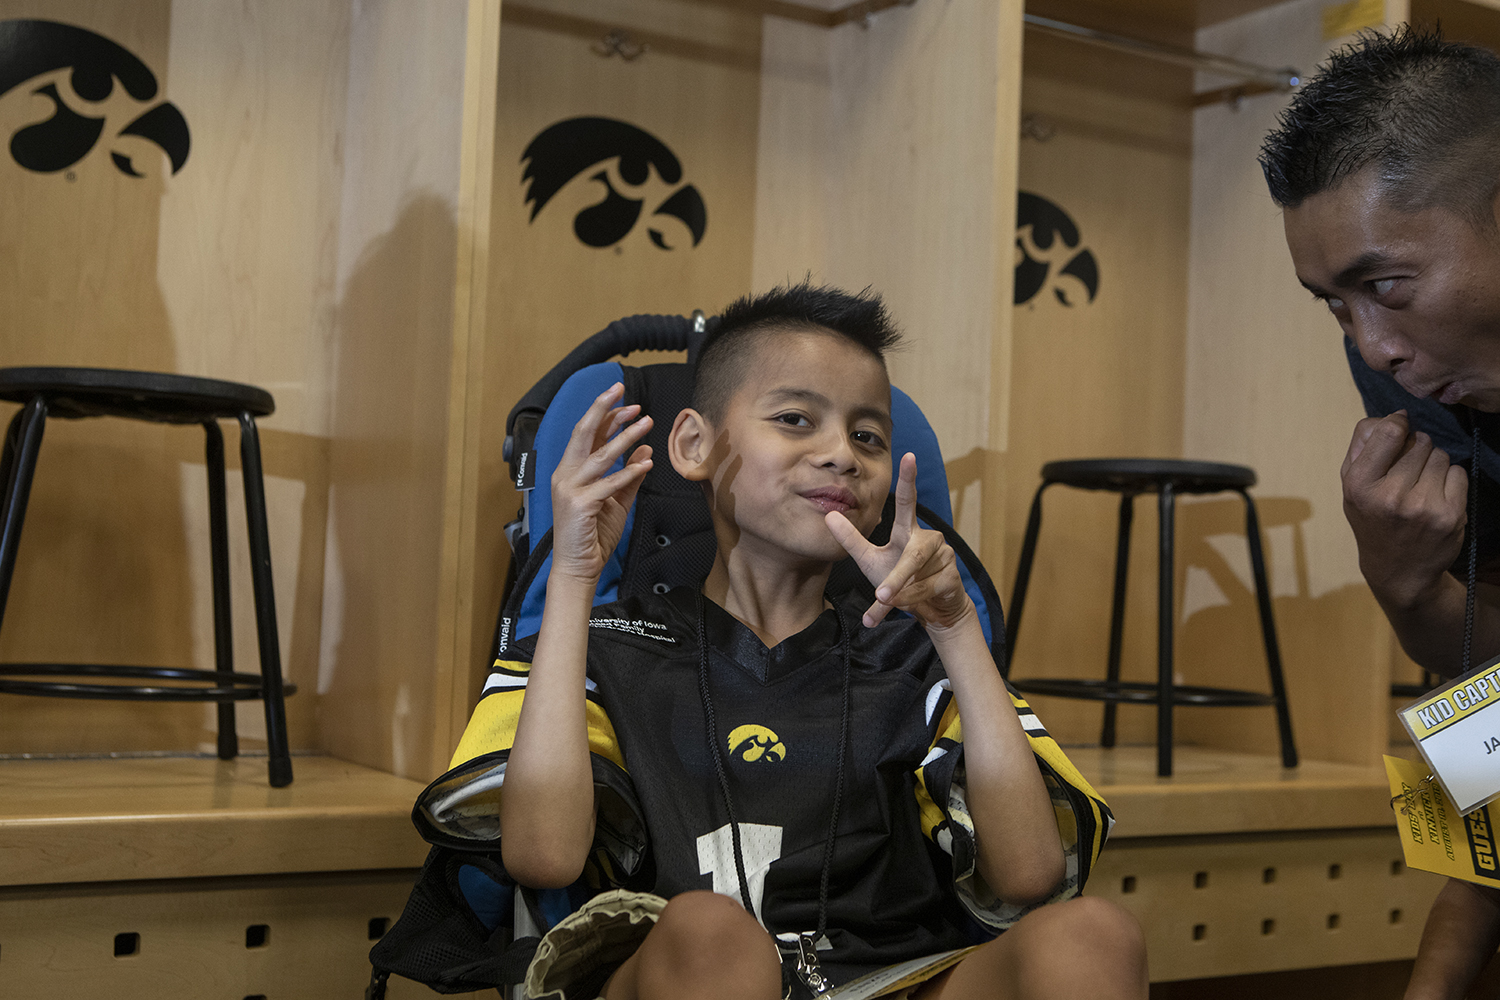 Kid Captain Enzo Thongsoum poses for the camera in the Hawkeye football locker room at Kids Day at Kinnick on Saturday, August 10, 2019. Kids Day at Kinnick is an annual event for families to experience Iowa's football stadium, while watching preseason practice and honoring this year's Kid Captains.